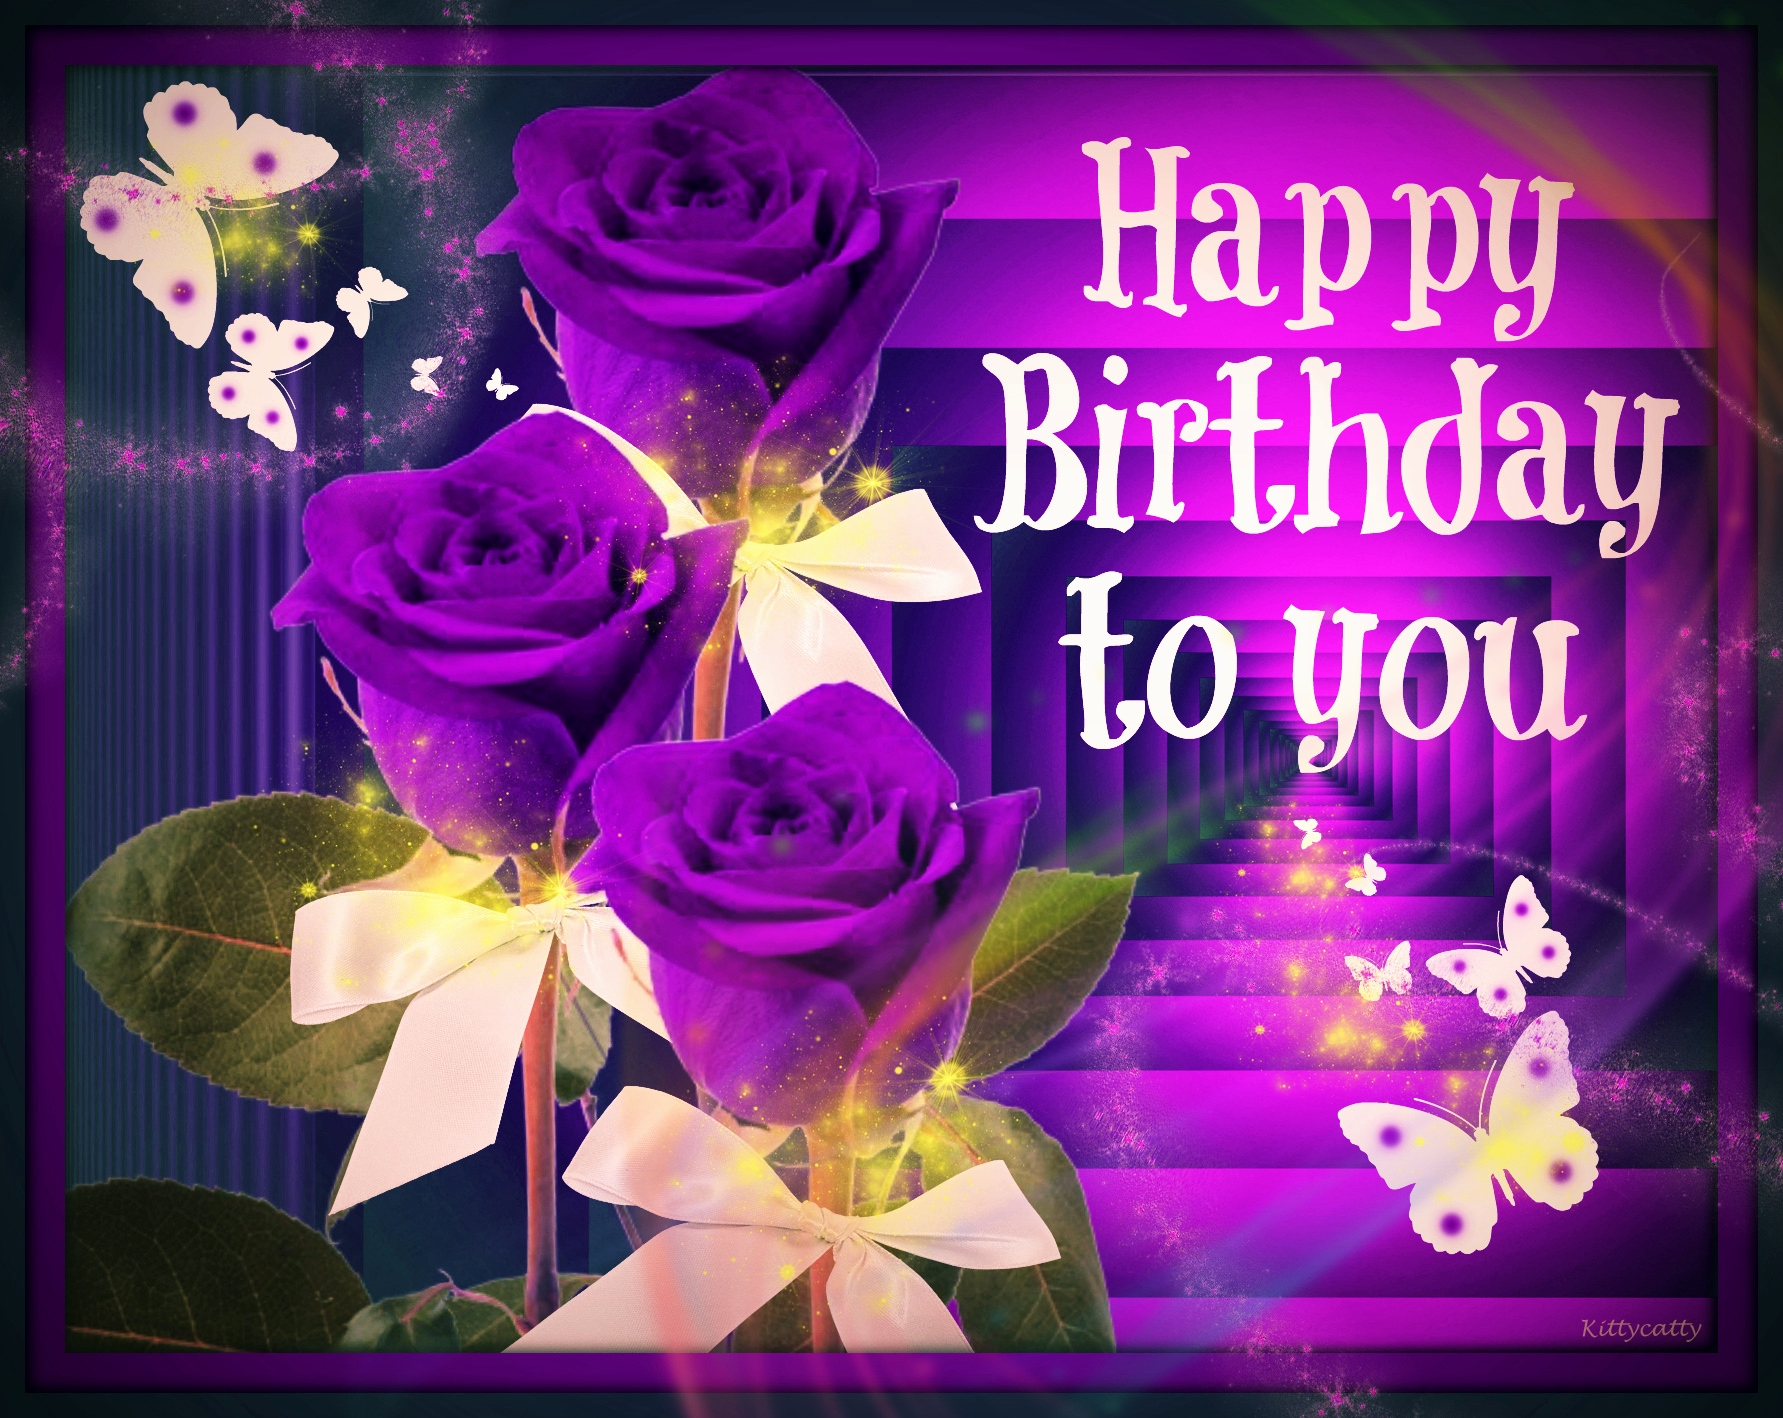 google birthday greeting cards ; birthday-greeting-cards-to-share-on-facebook-fresh-happy-birthday-cards-google-search-of-birthday-greeting-cards-to-share-on-facebook